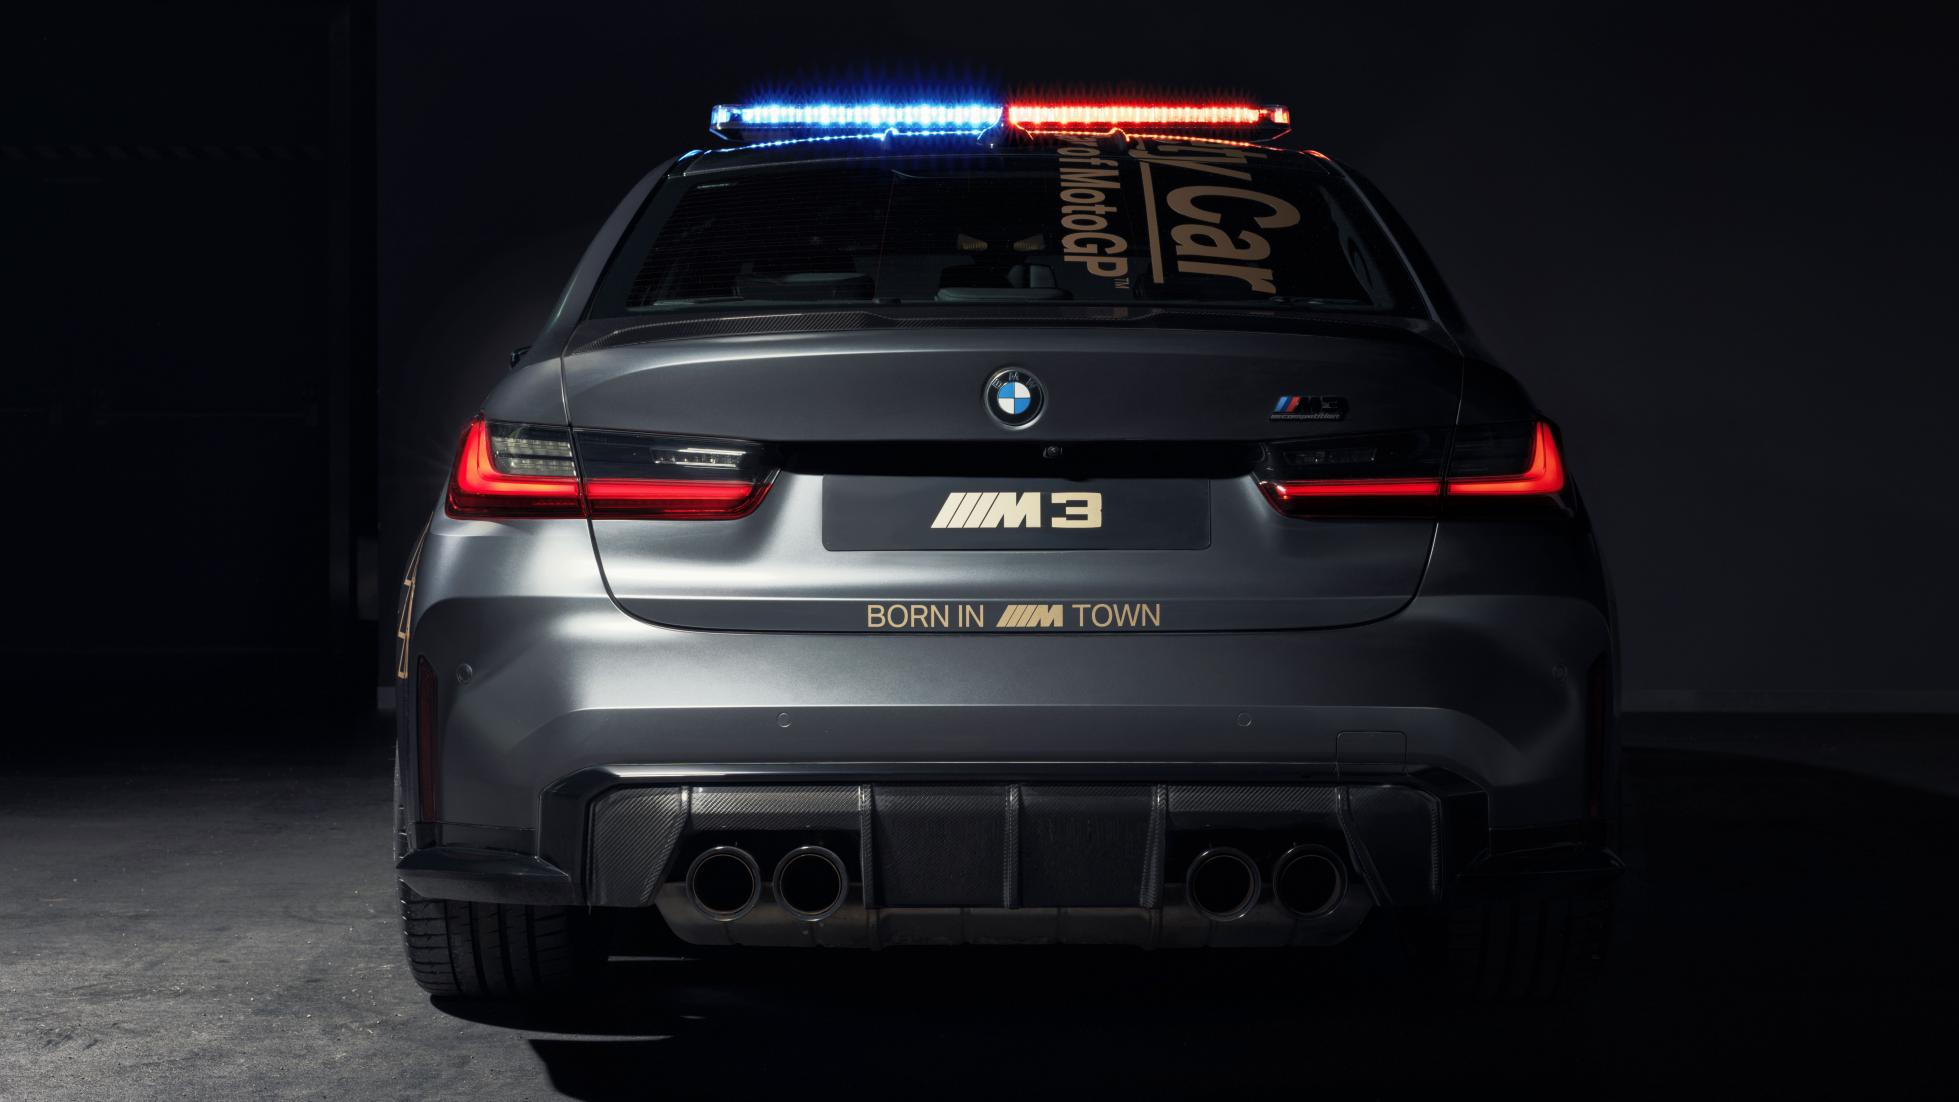 The BMW M3 as a MotoGP safety car, rear view